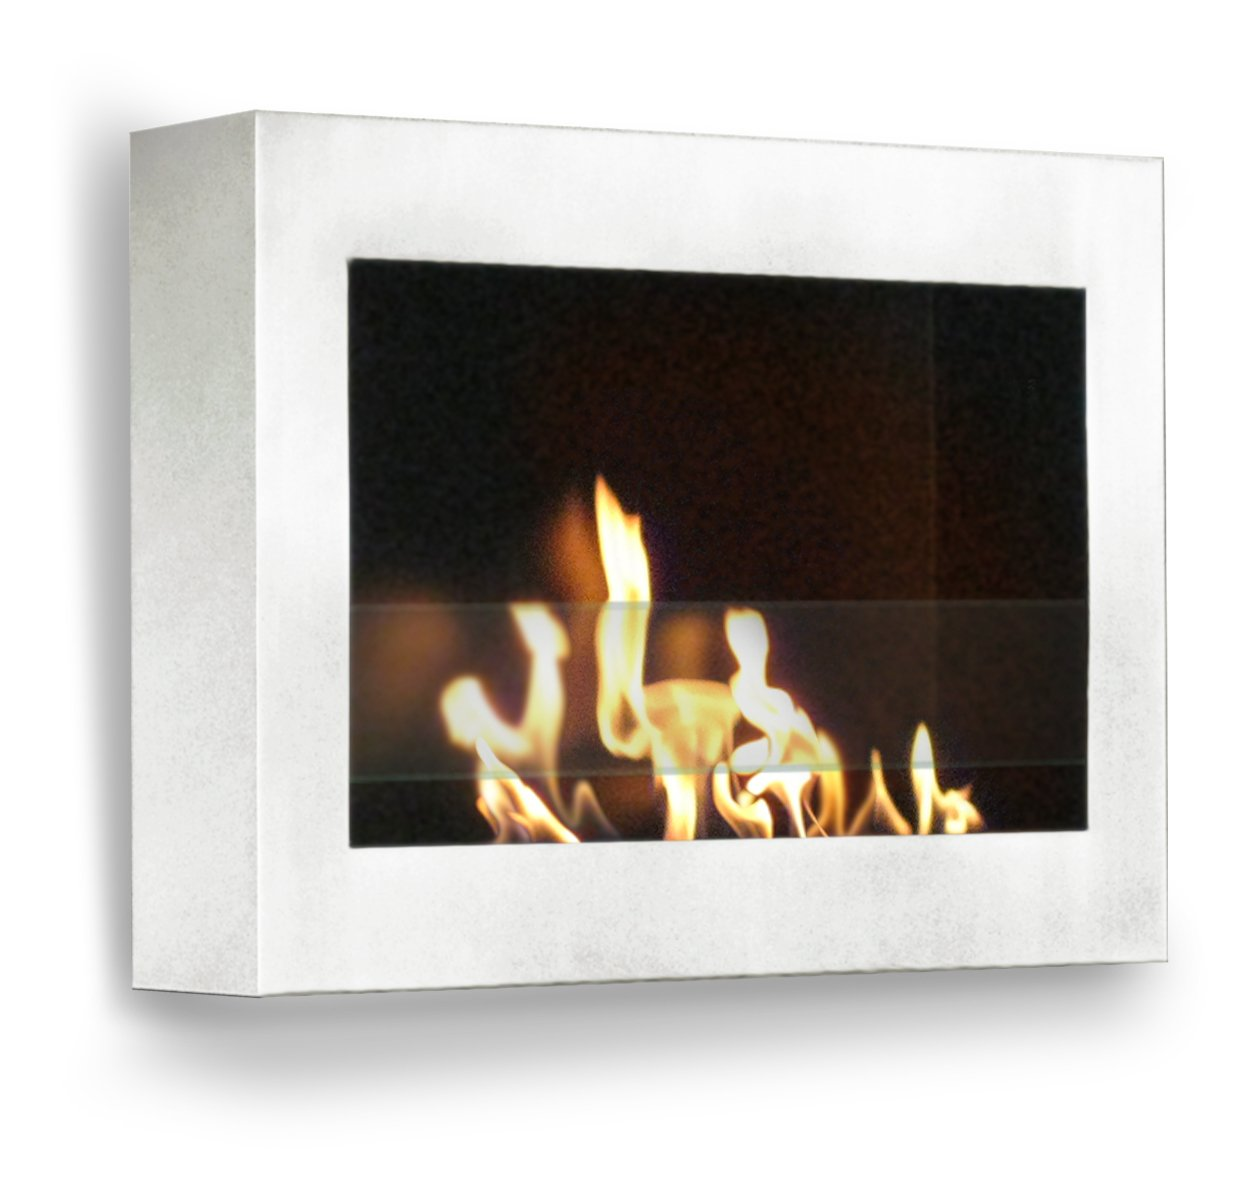 Anywhere Fireplace SoHo Wall Mount Fireplaces (White) by Anywhere Fireplace